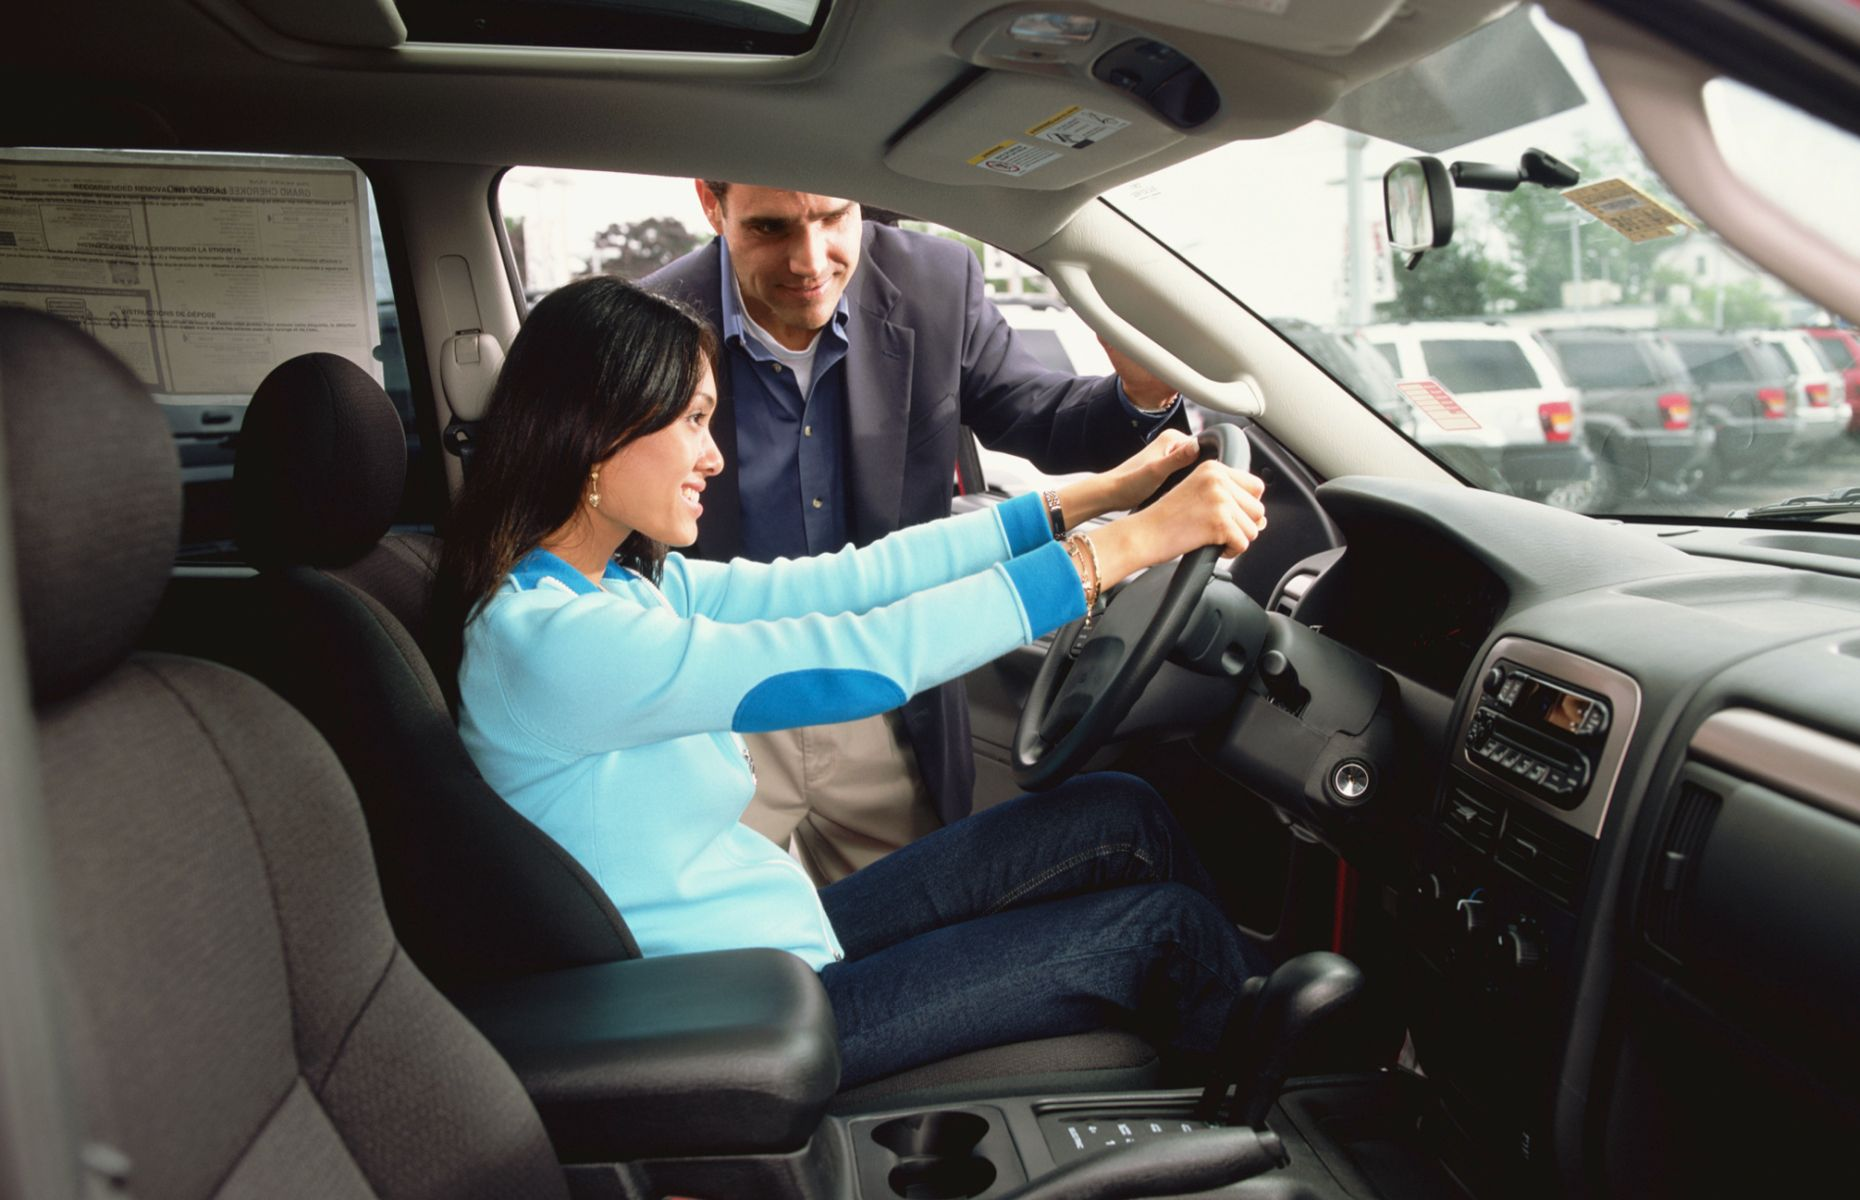 10 10 tips for car buying - The 10 Car Buying Mistakes Everyone Makes